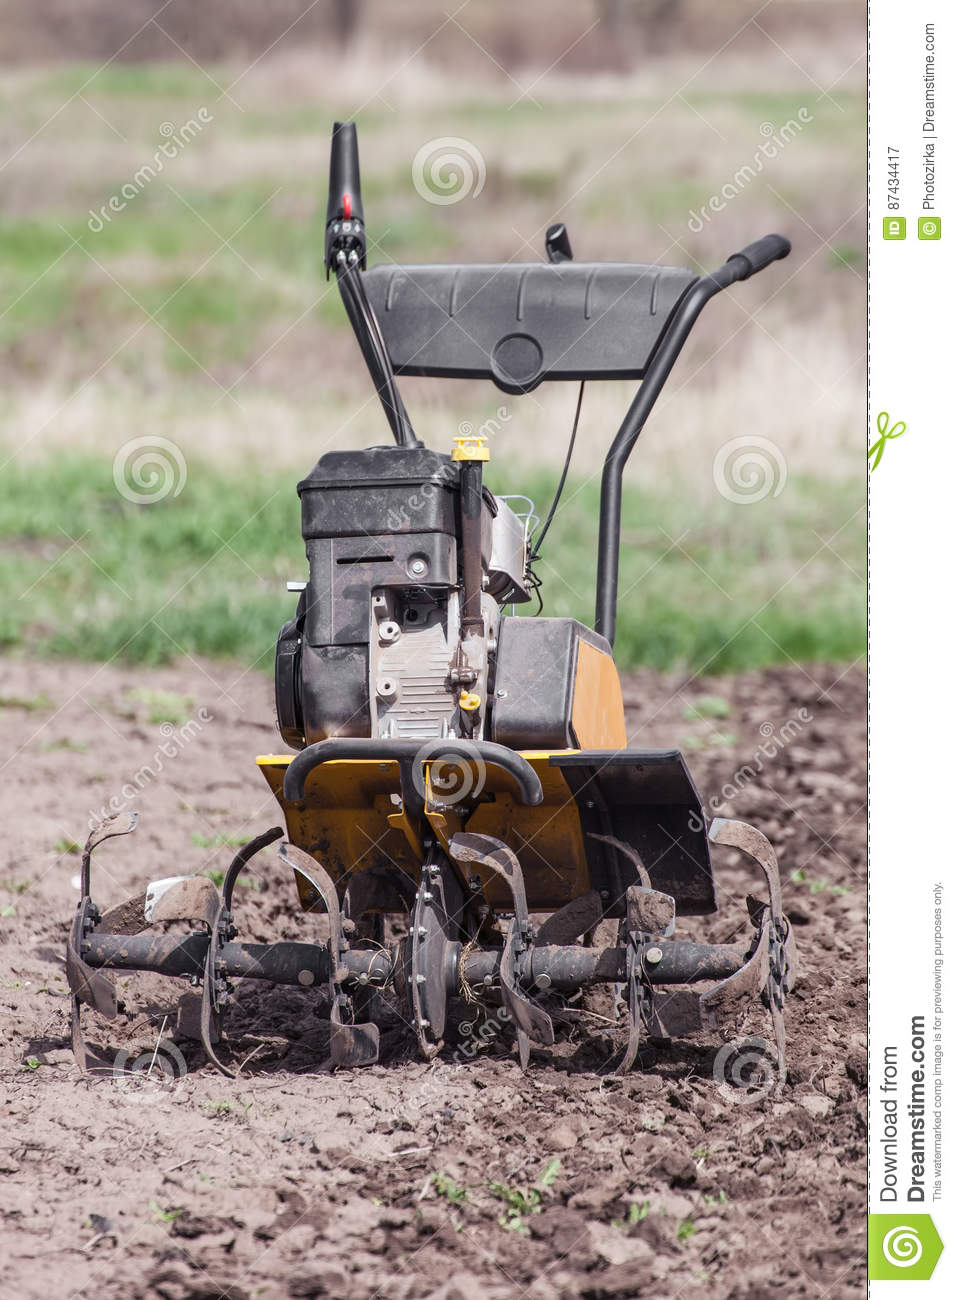 Loosens The Soil Cultivator Front View Stock Image - Image